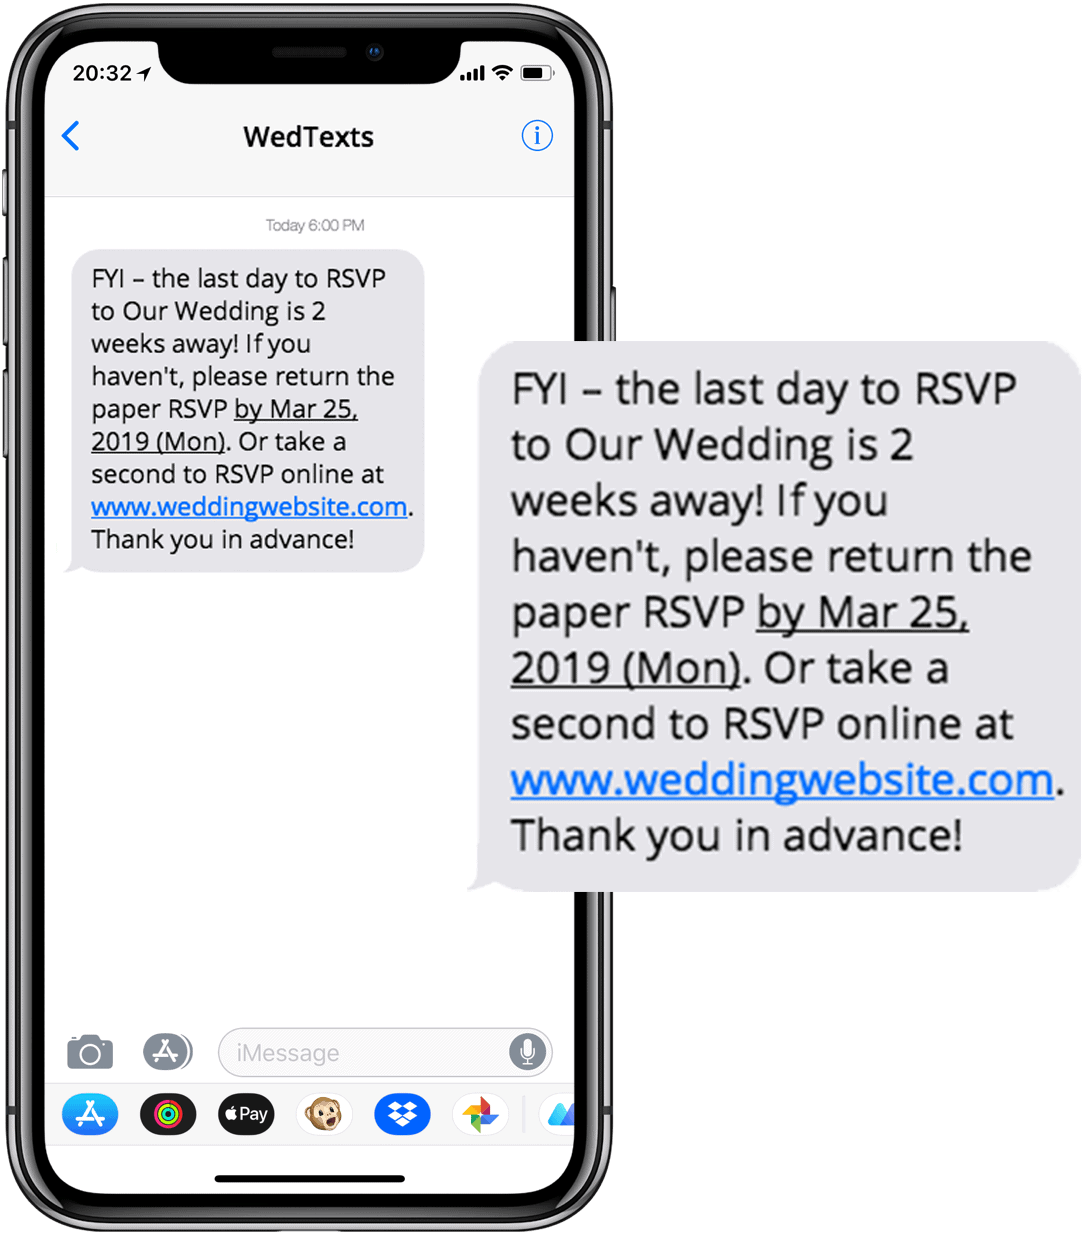 wedding text messages - iphone - wedding rsvp reminder